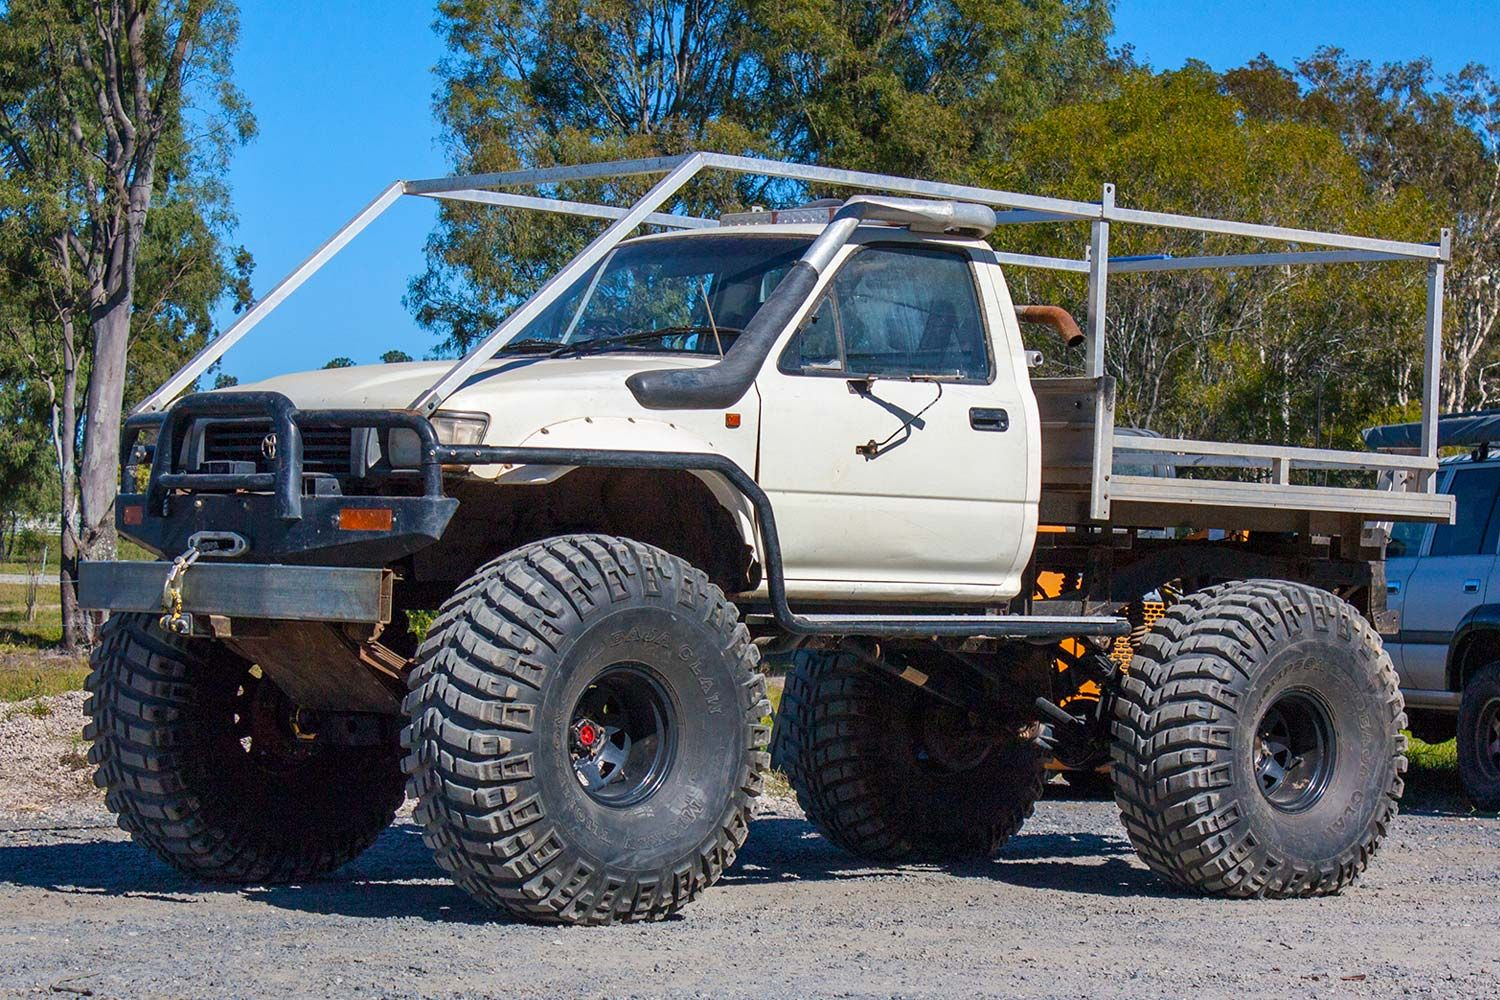 The Swamp Buggy Is Back The All 4 Adventure Toyota Hilux Is Back